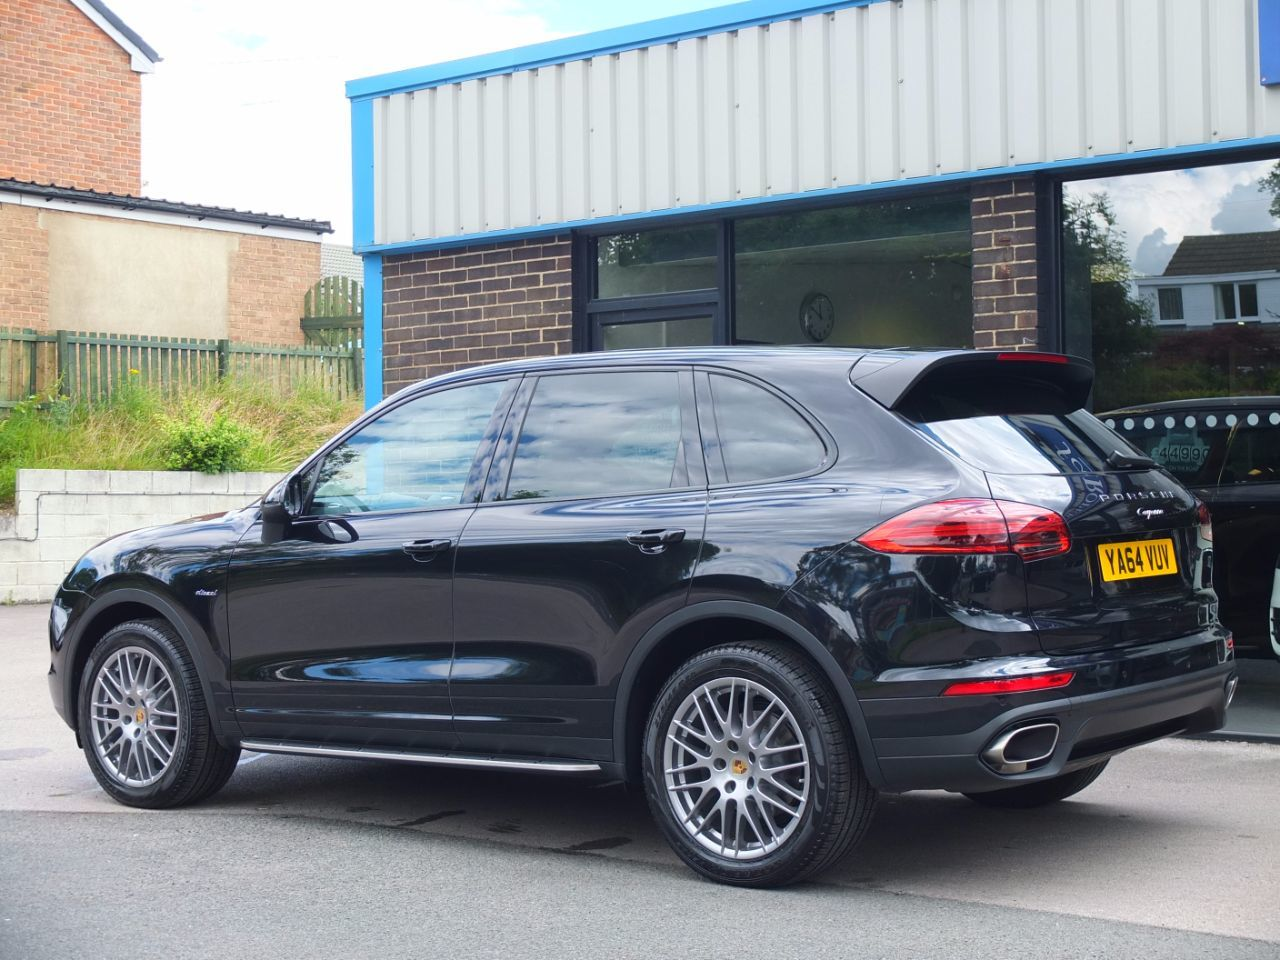 used porsche cayenne 3 0 diesel tiptronic s facelift model panoramic roof spec for sale in. Black Bedroom Furniture Sets. Home Design Ideas